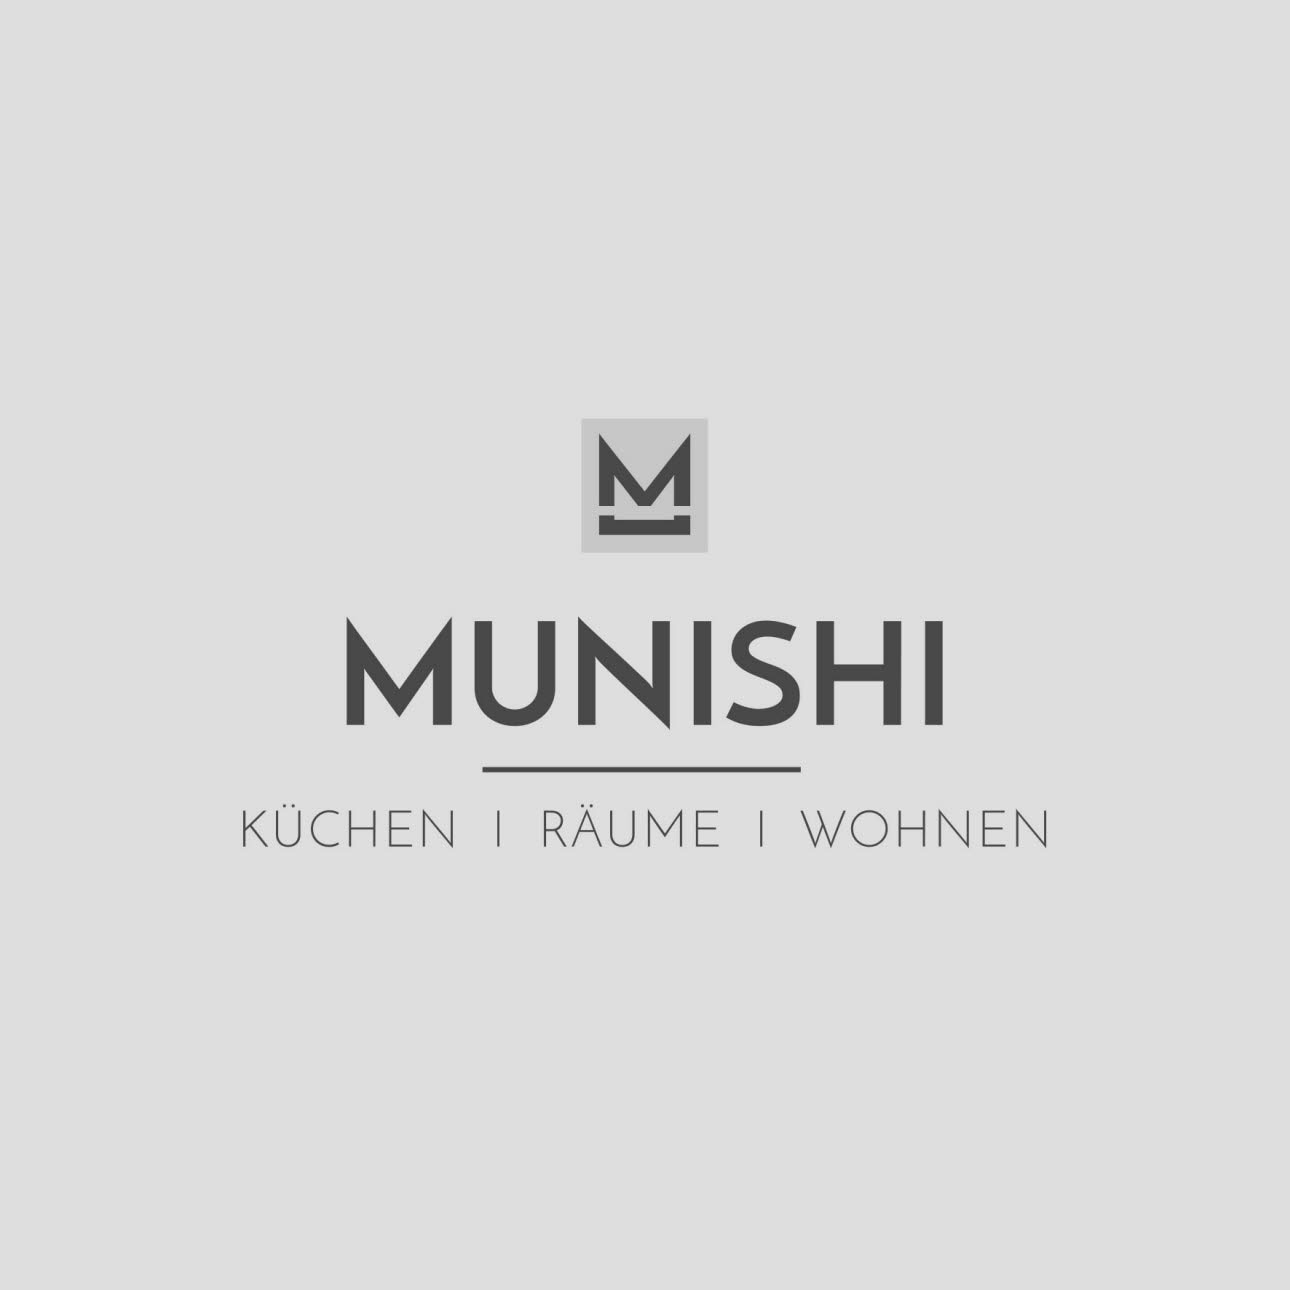 Munishi Logo grau